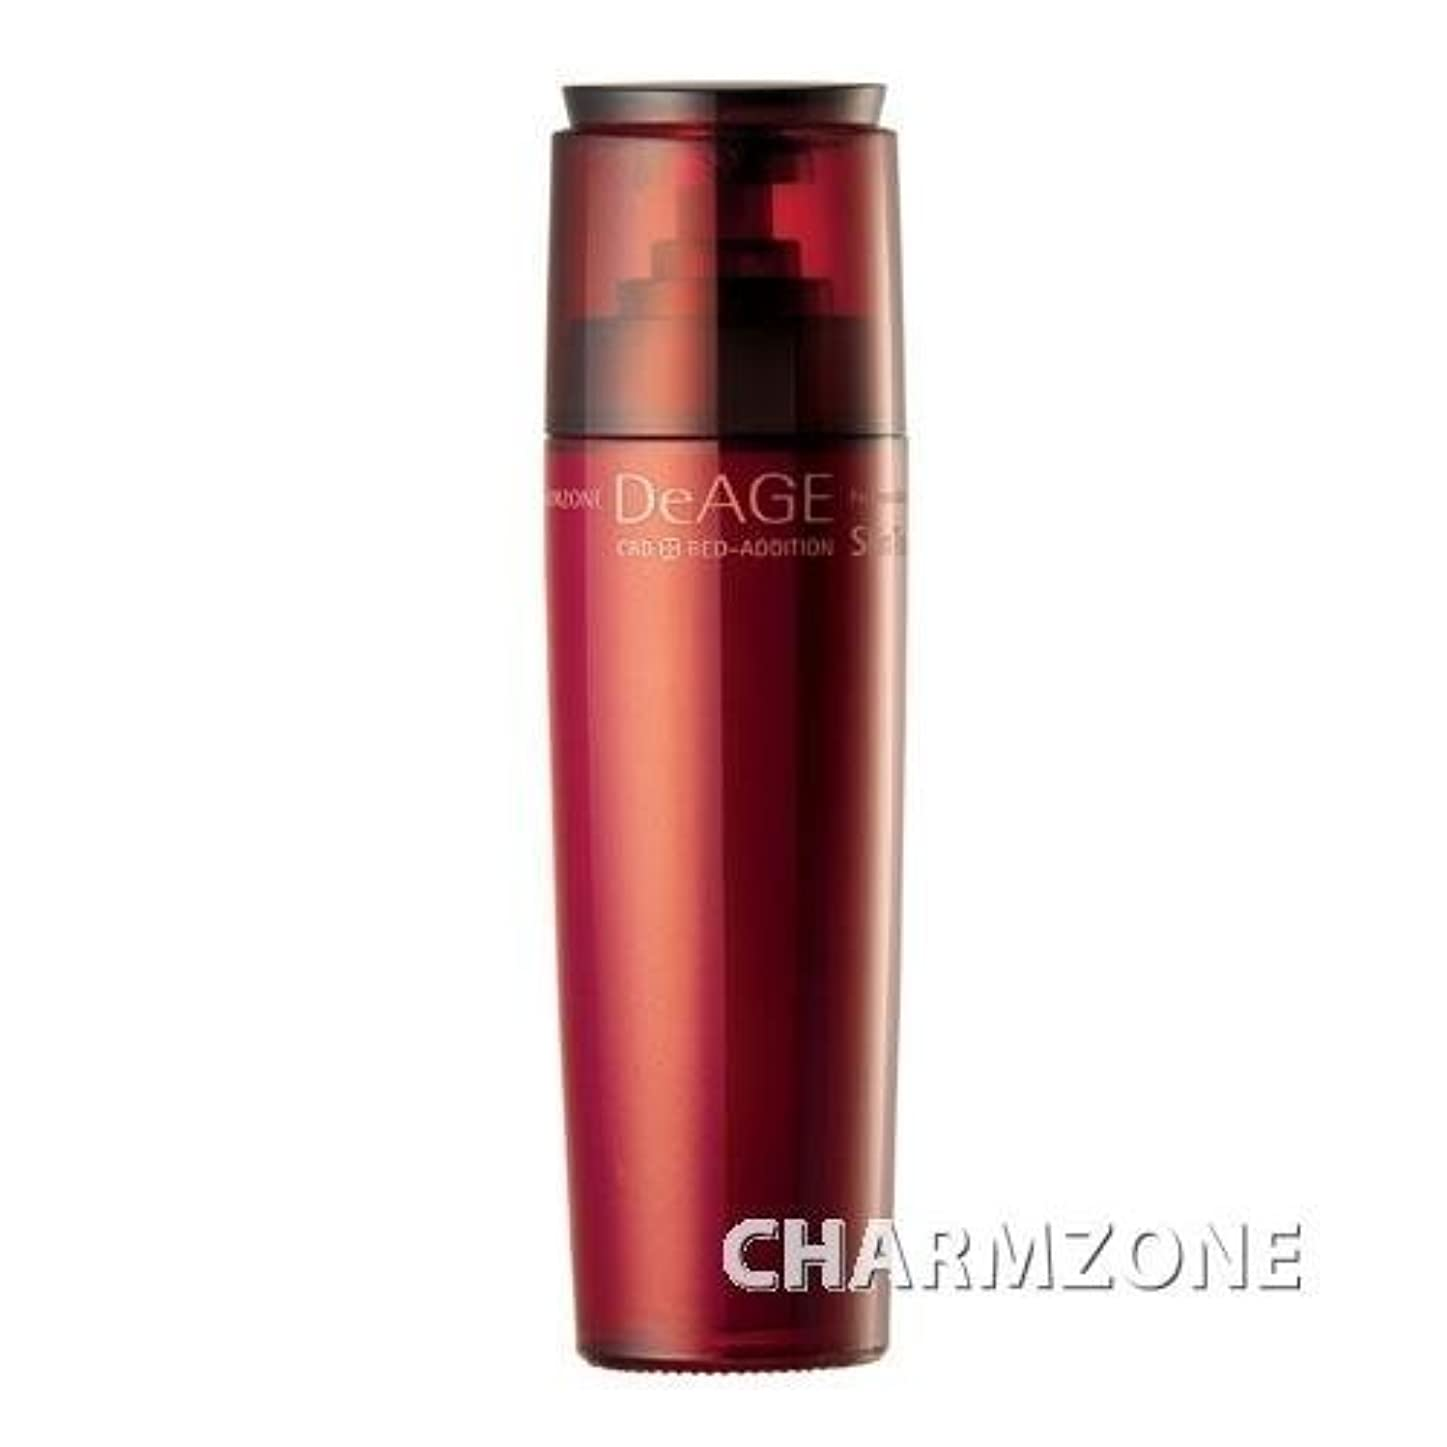 CHARMZONE DeAGE RED-ADDITION Skin Toner [Korean Import]